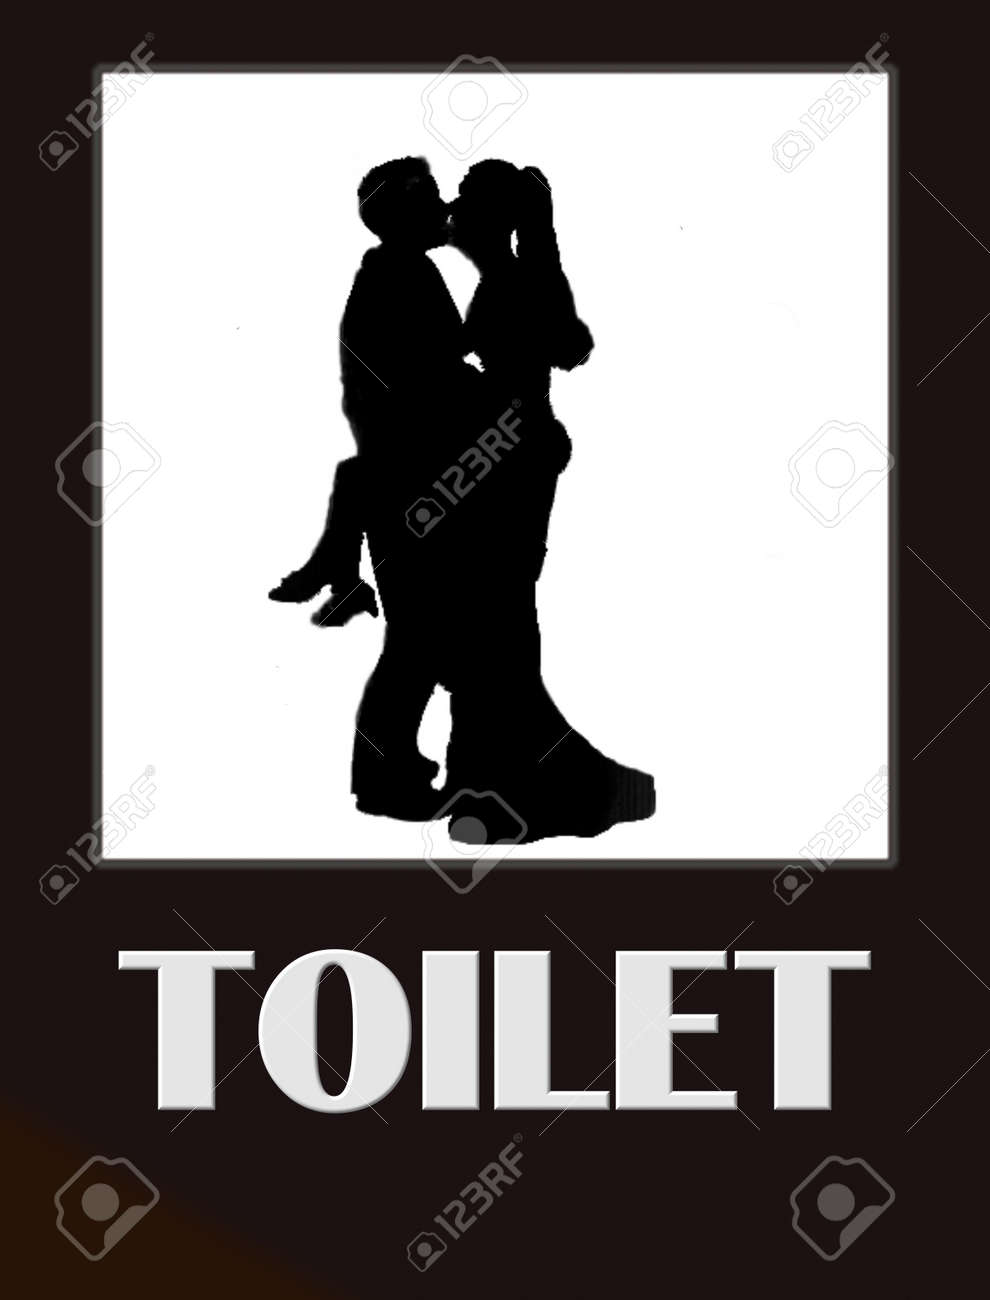 Bathroom Signs Male Female funny male and female bathroom sign black on white stock photo